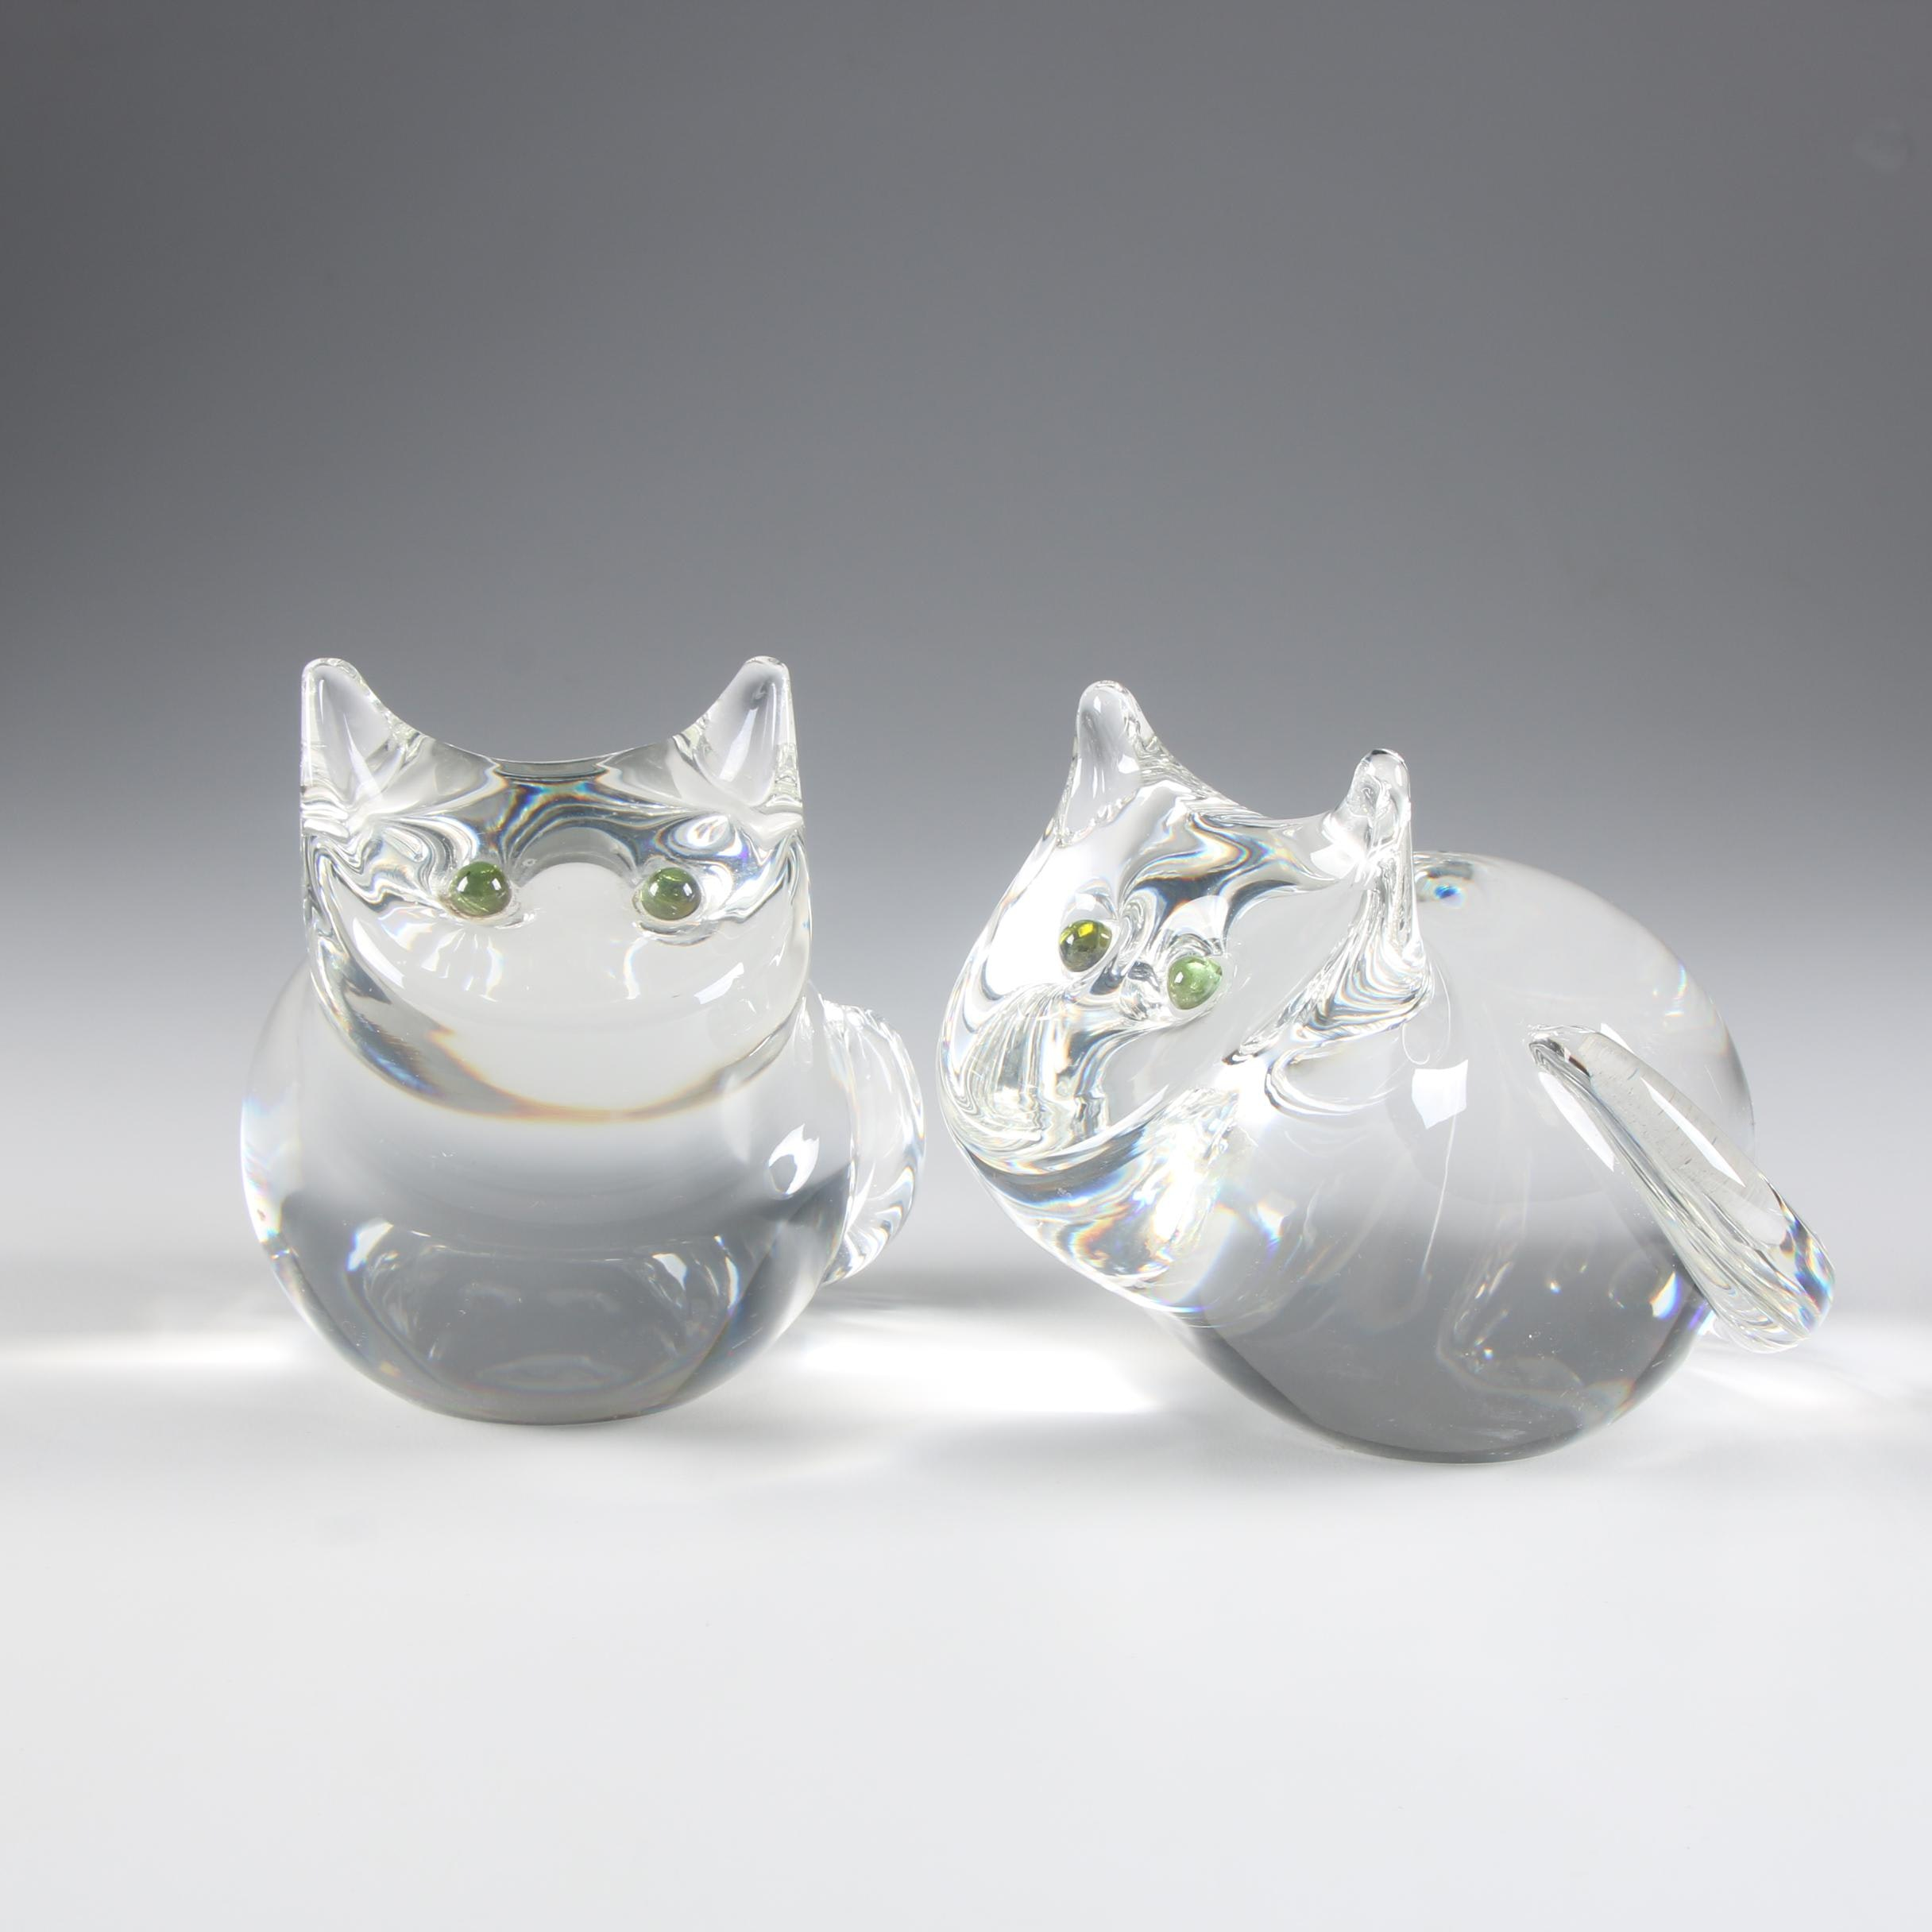 "Steuben Art Glass ""Cat"" Figurines Designed by Donald Pollard, 1973"